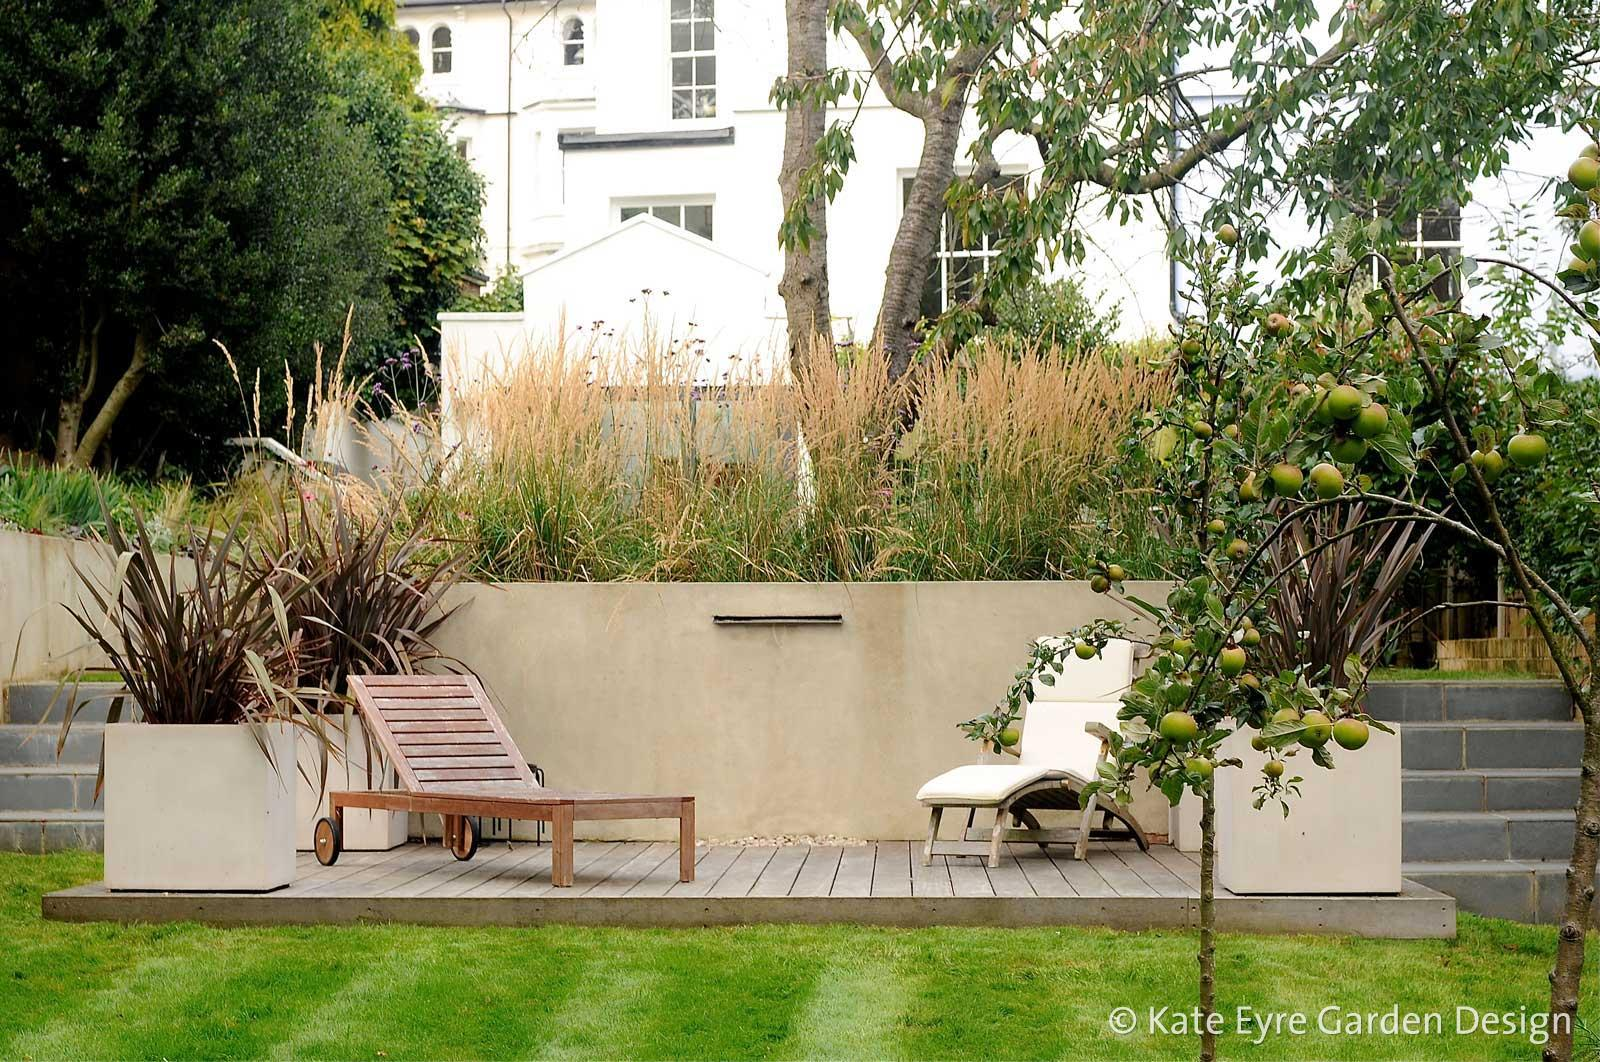 Garden design in crystal palace south east london for Medium back garden designs